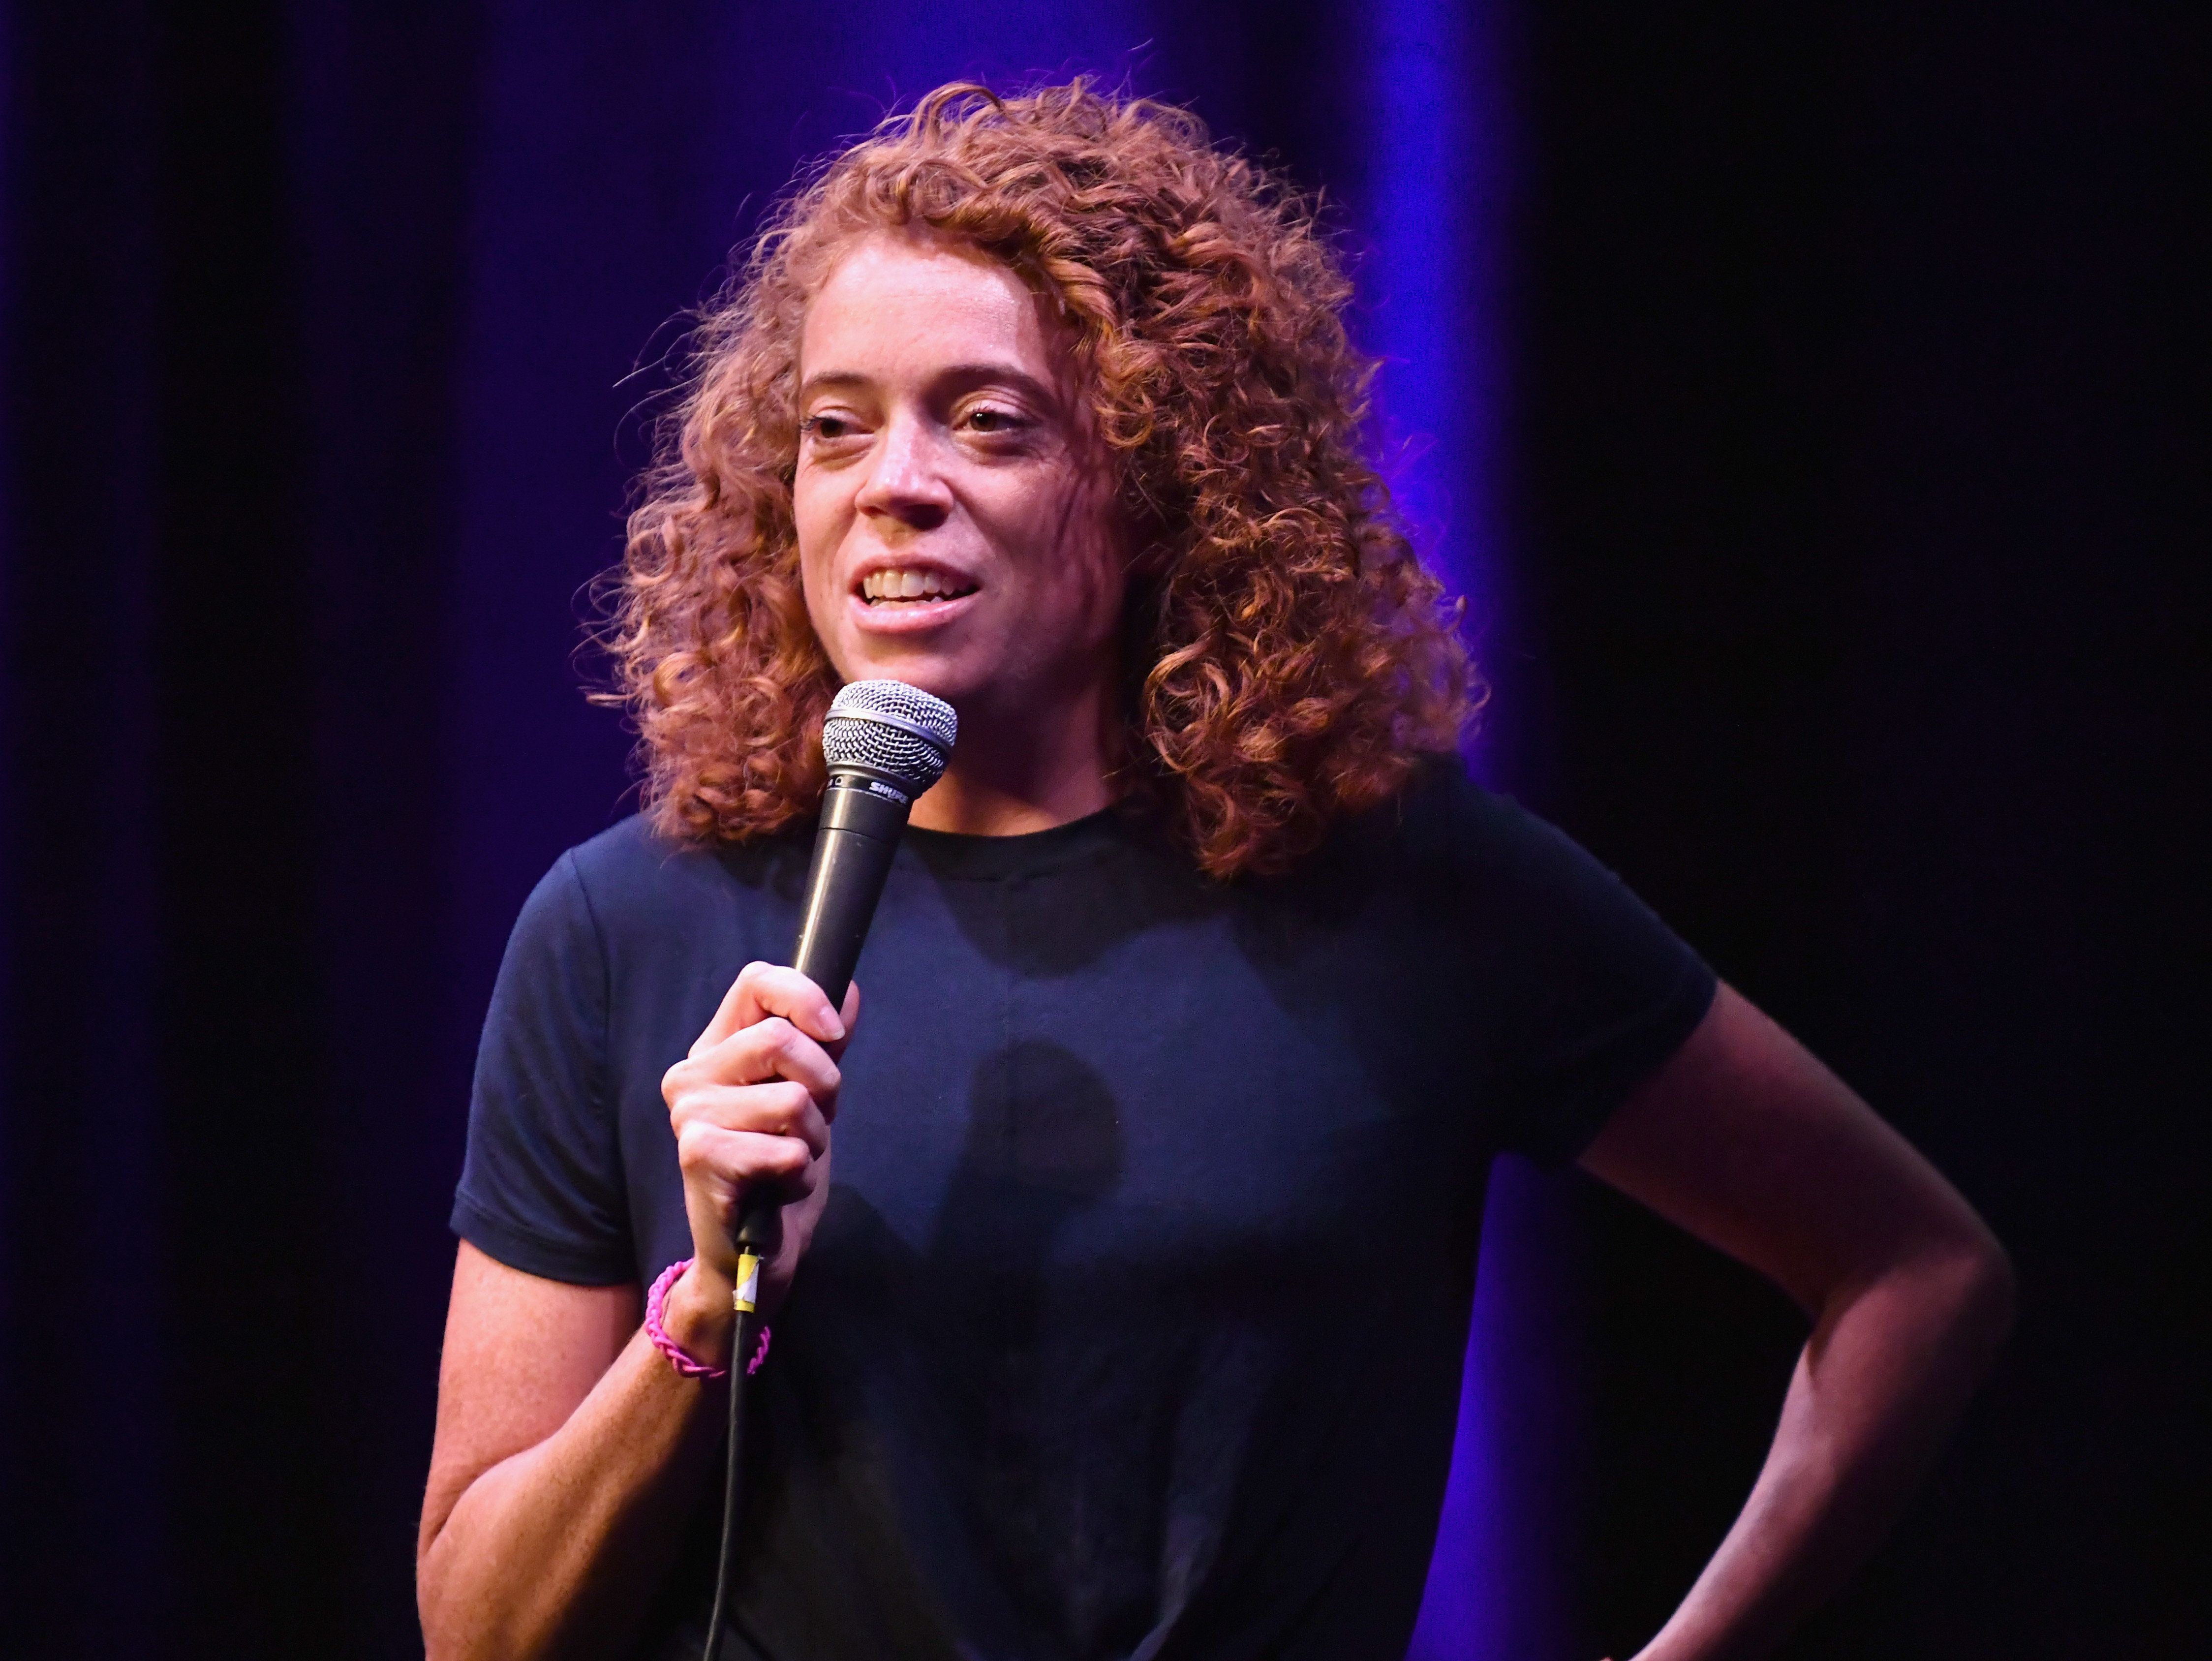 LAS VEGAS, NV - SEPTEMBER 22:  Michelle Wolf performs onstage at The Kicker during the 2018 Life Is Beautiful Festival on September 22, 2018 in Las Vegas, Nevada.  (Photo by FilmMagic/FilmMagic for Life Is Beautiful)